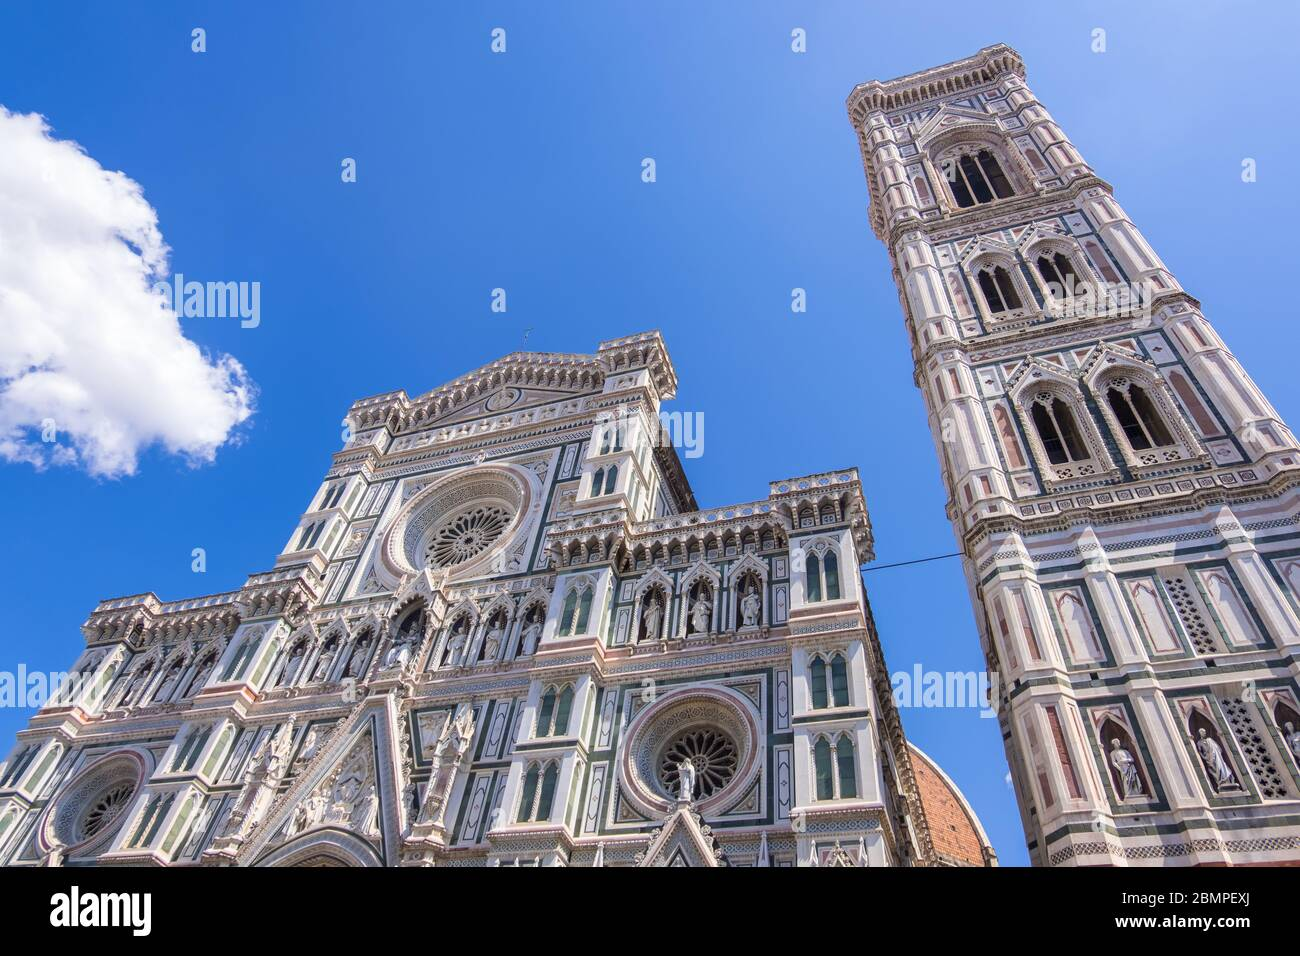 Florence, Italy - August 16, 2019: Cathedral Santa Maria Del Fiore and Giotto's Campanile on Piazza del Duomo in Florence Stock Photo